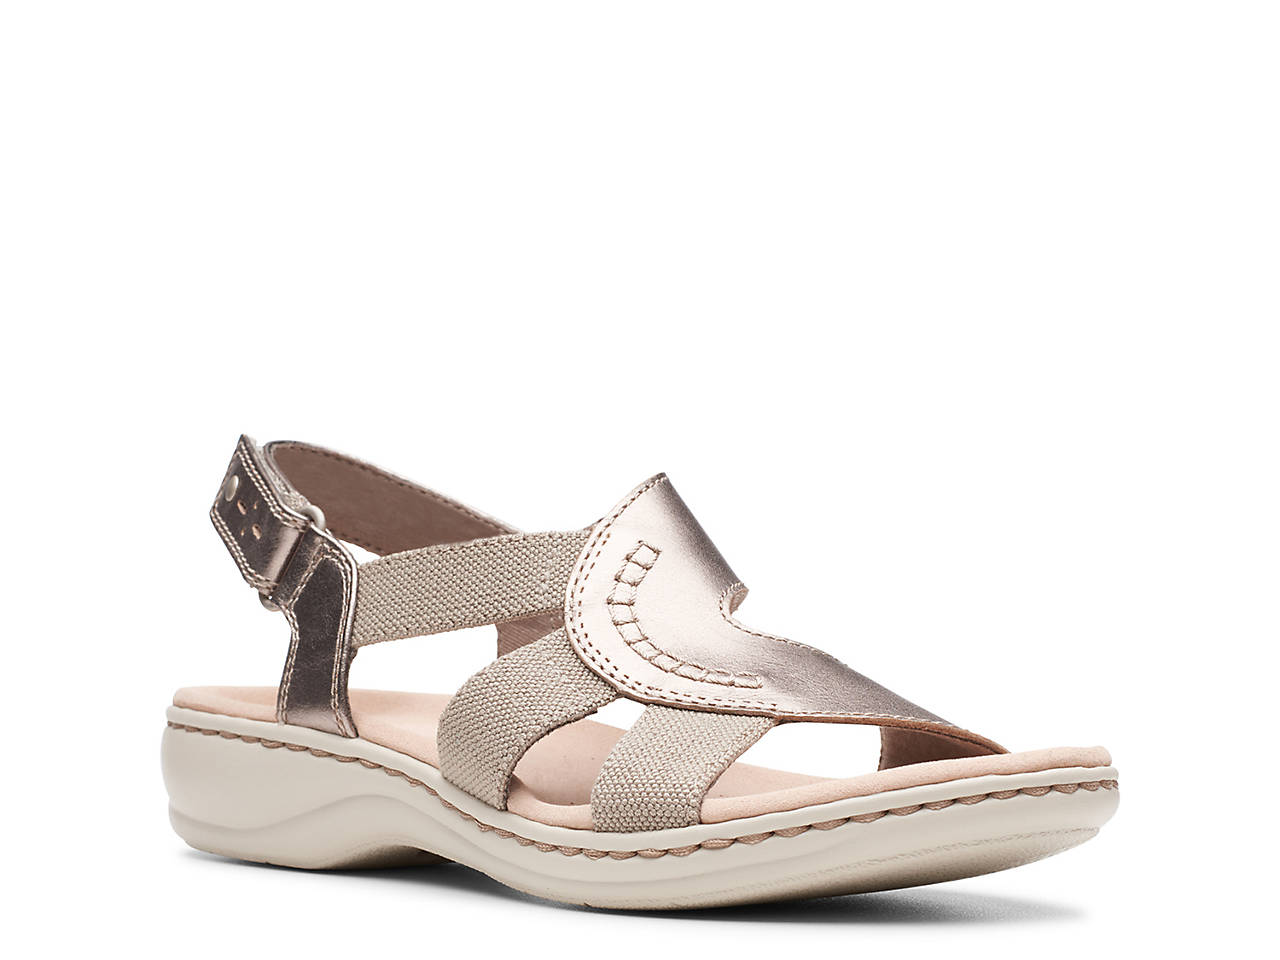 6b8639f34ee Clarks Leisa Joy Sandal Women s Shoes